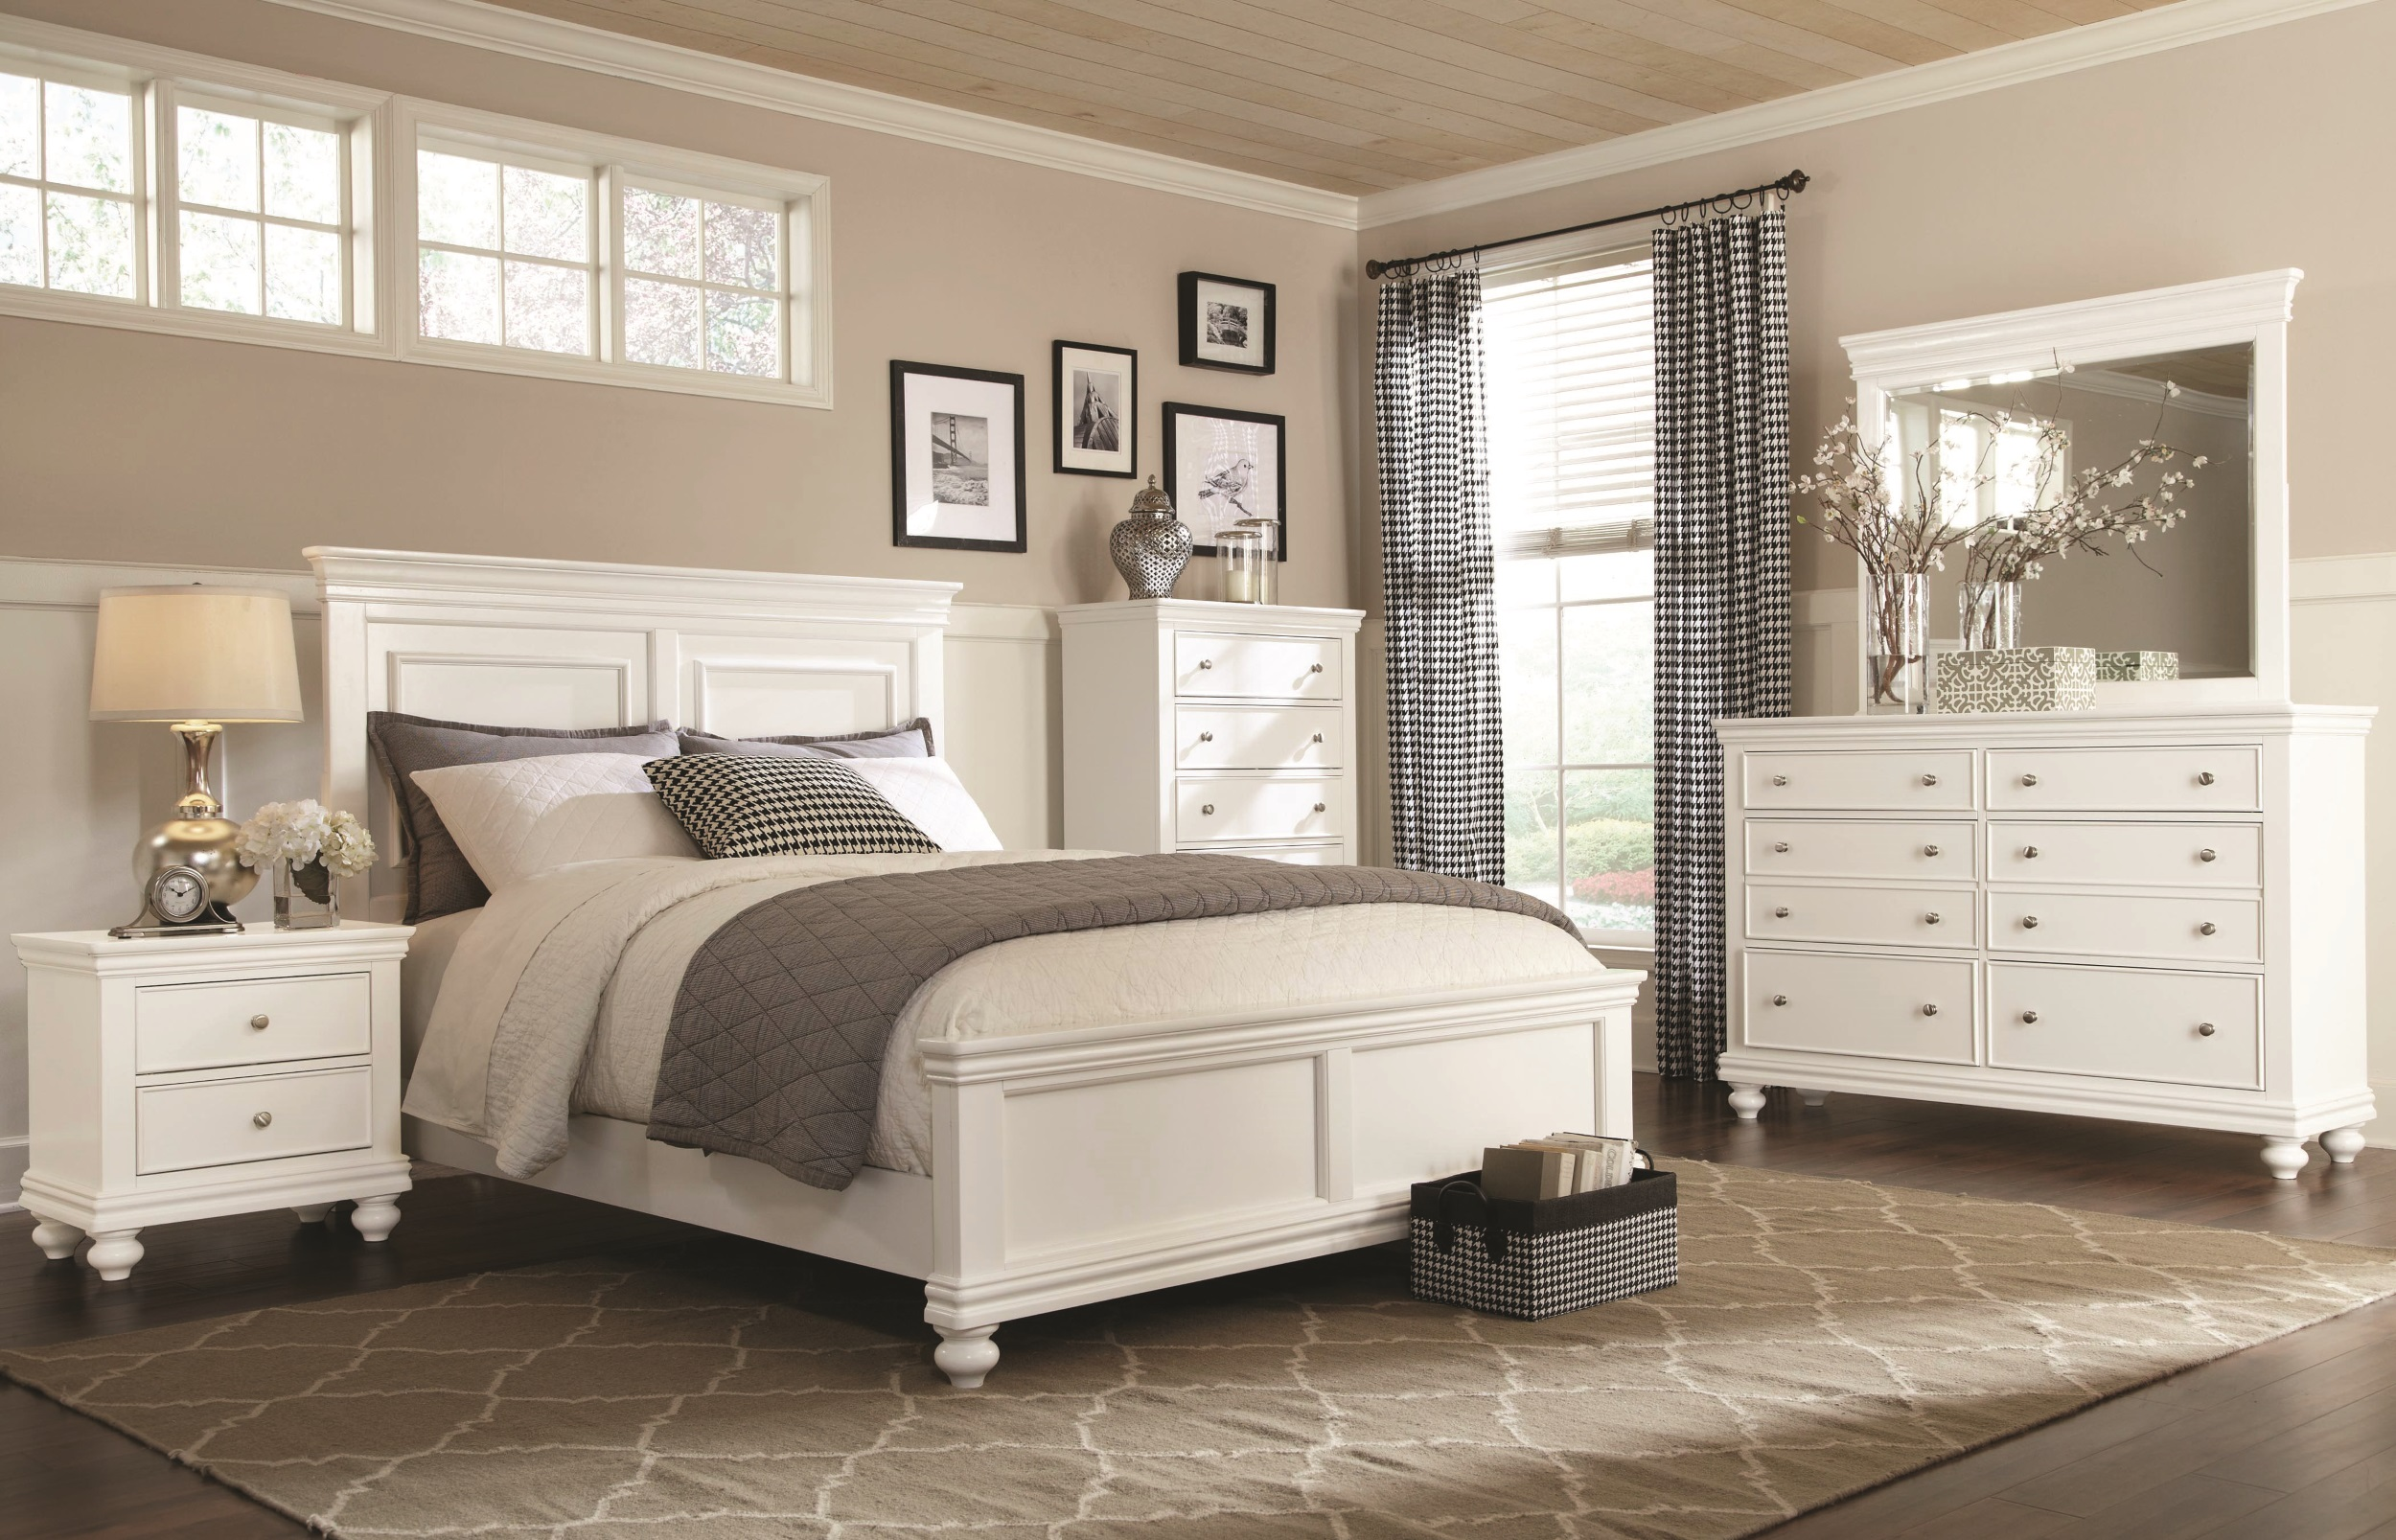 ... 1000 ideas about white bedroom furniture on pinterest living room  furniture WPRVLGX